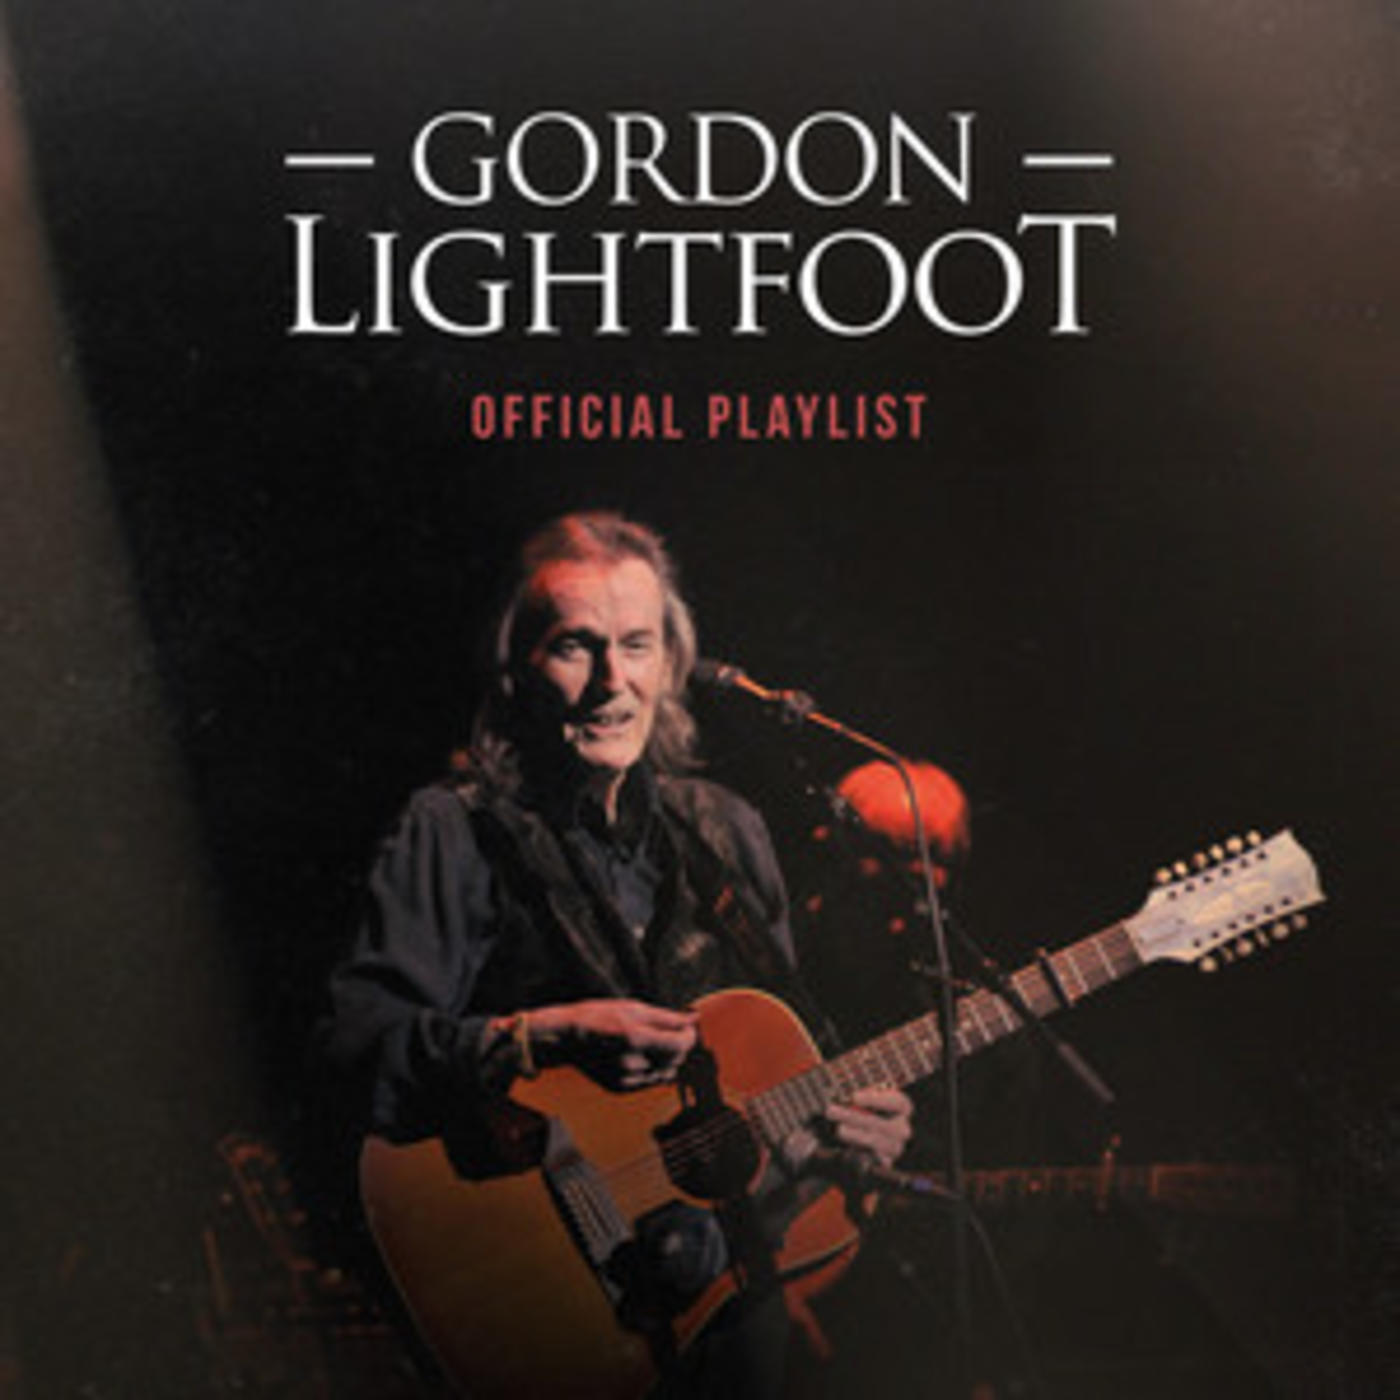 Official Gordon Lightfoot playlist - Sundown, If You Could Read My Mind, Carefree Highway, Beautiful